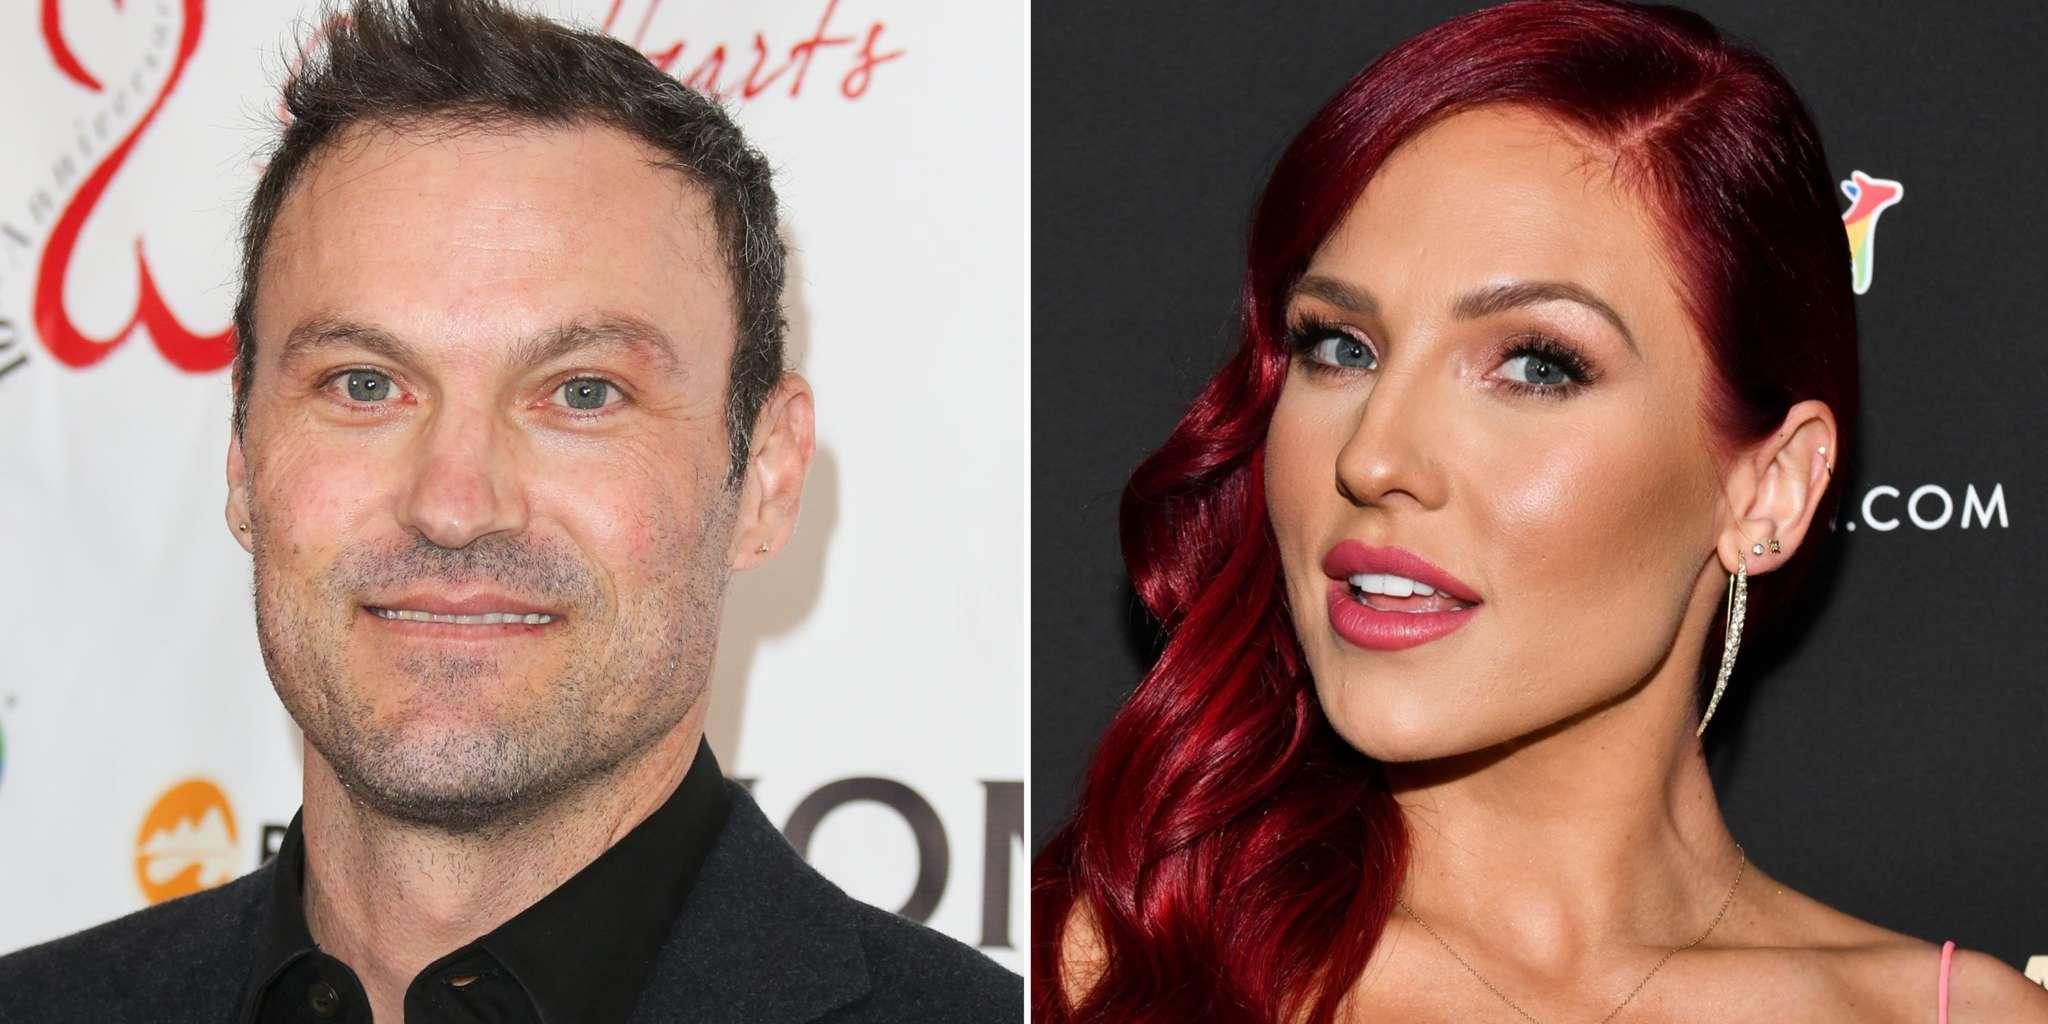 Brian Austin Green And Sharna Burgess - Here's How Megan Fox Reportedly Feels About Her Ex-Husband Moving On!